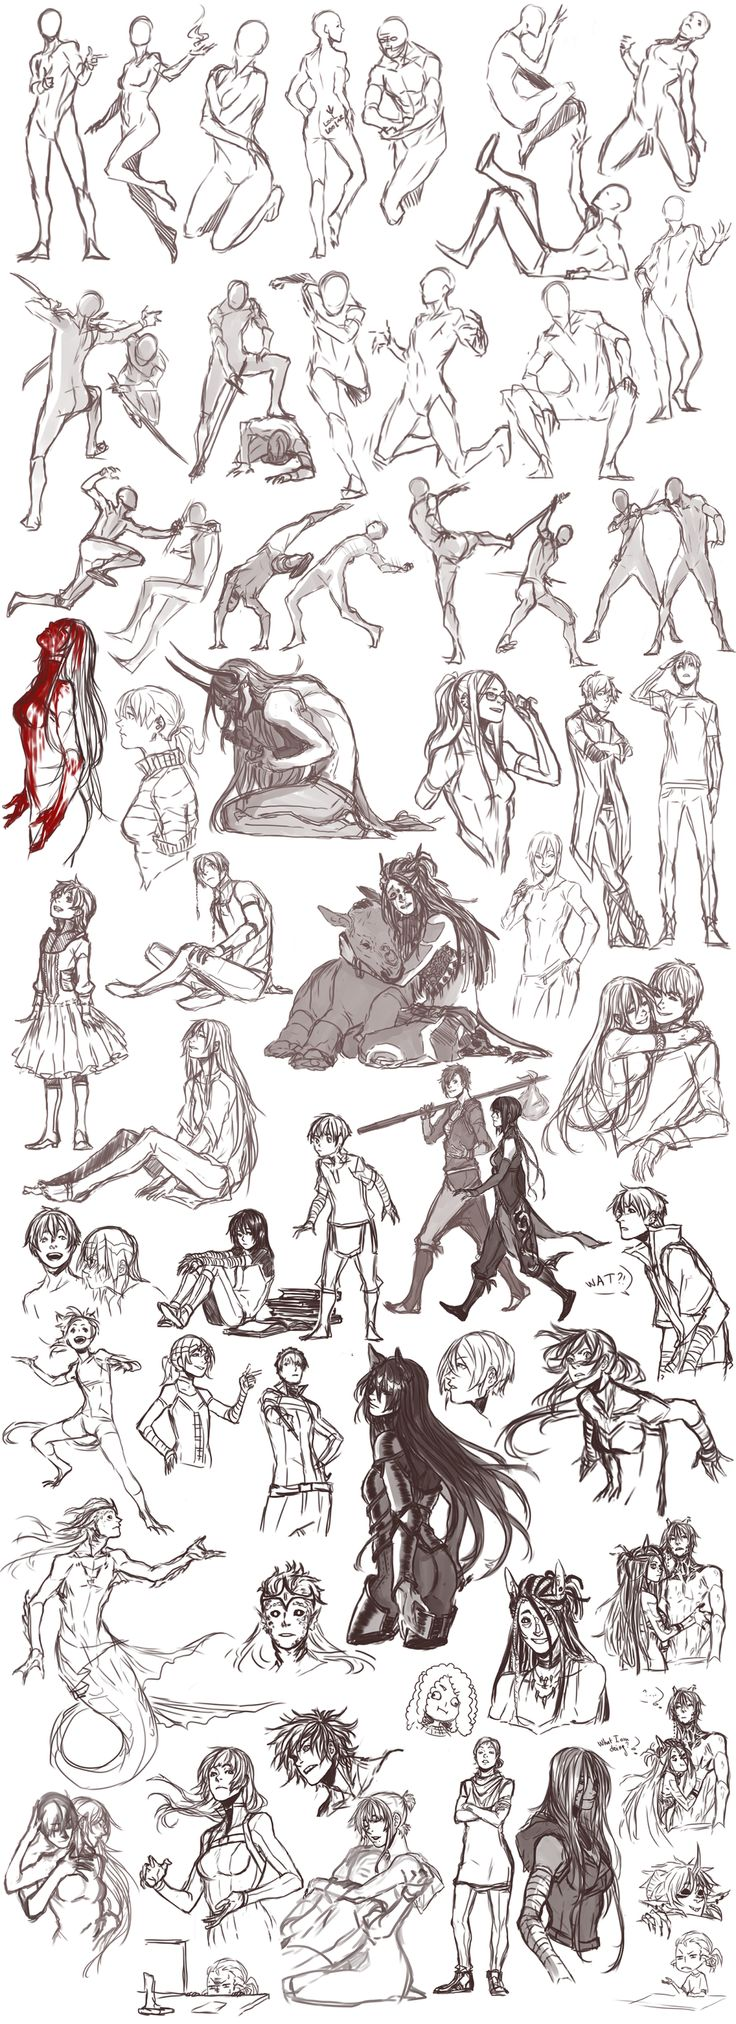 Sketch dump 26 by Namonn on DeviantArt